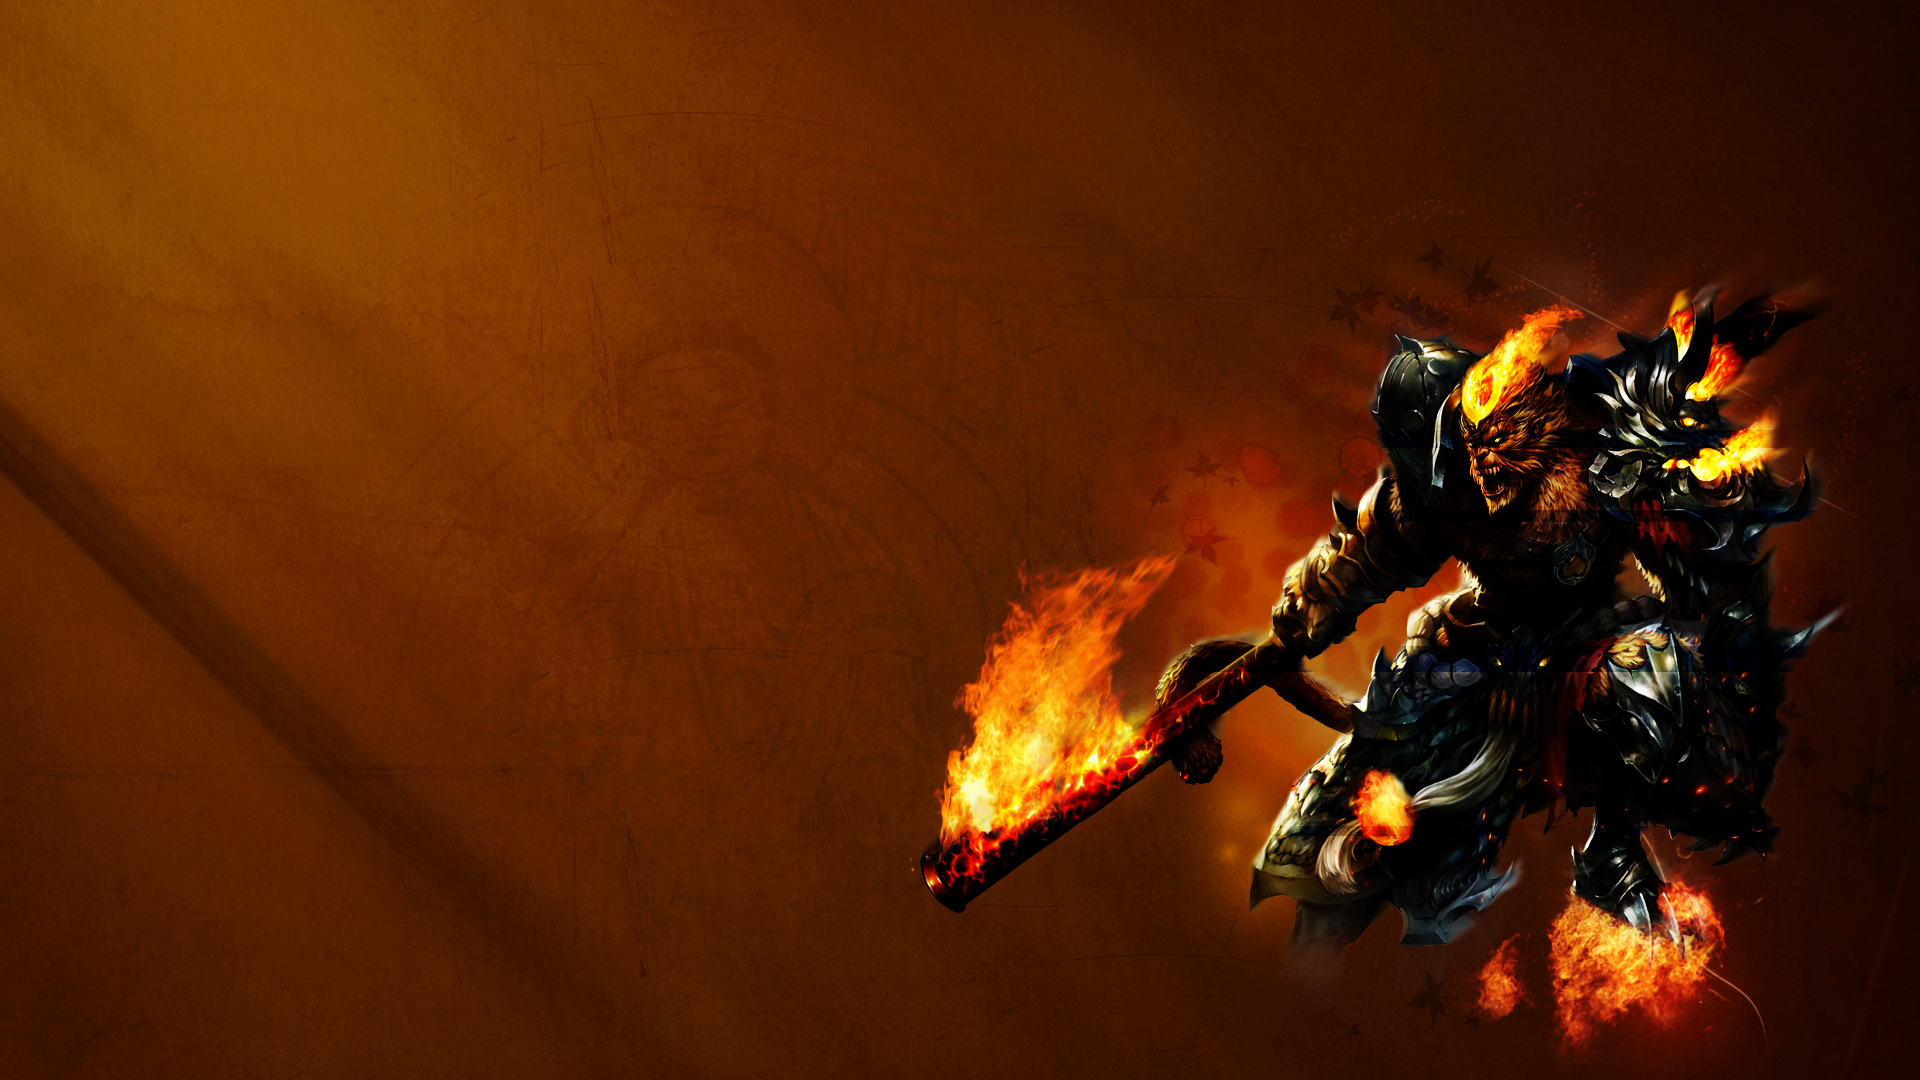 League of Legends Wukong Wallpaper by PinguAlex 1920x1080